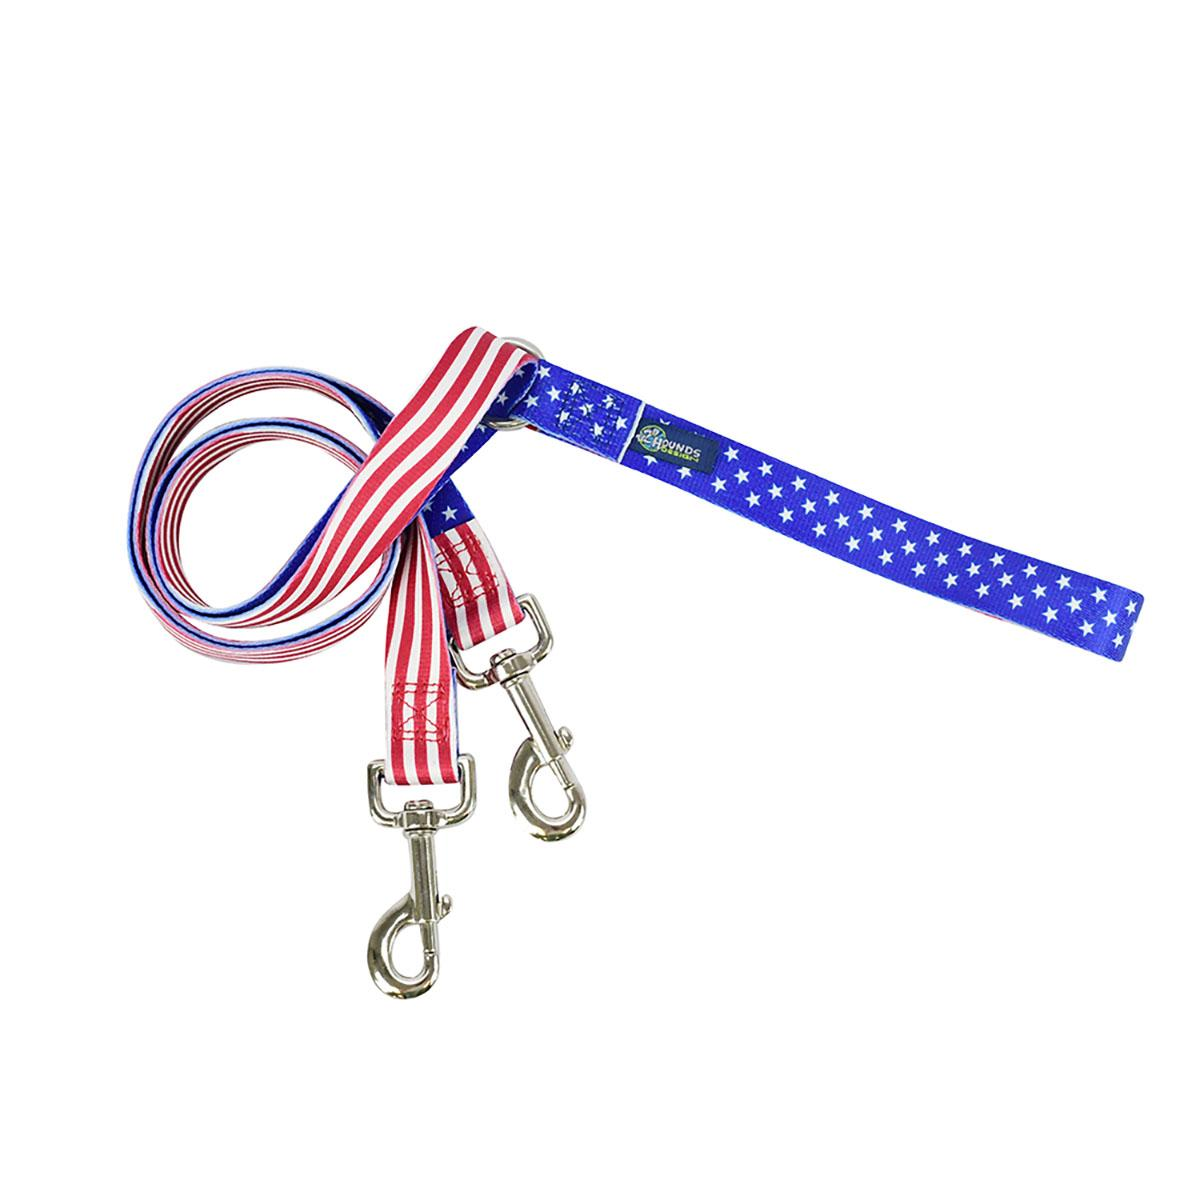 EarthStyle Double Connection Dog Leash - Star Spangled